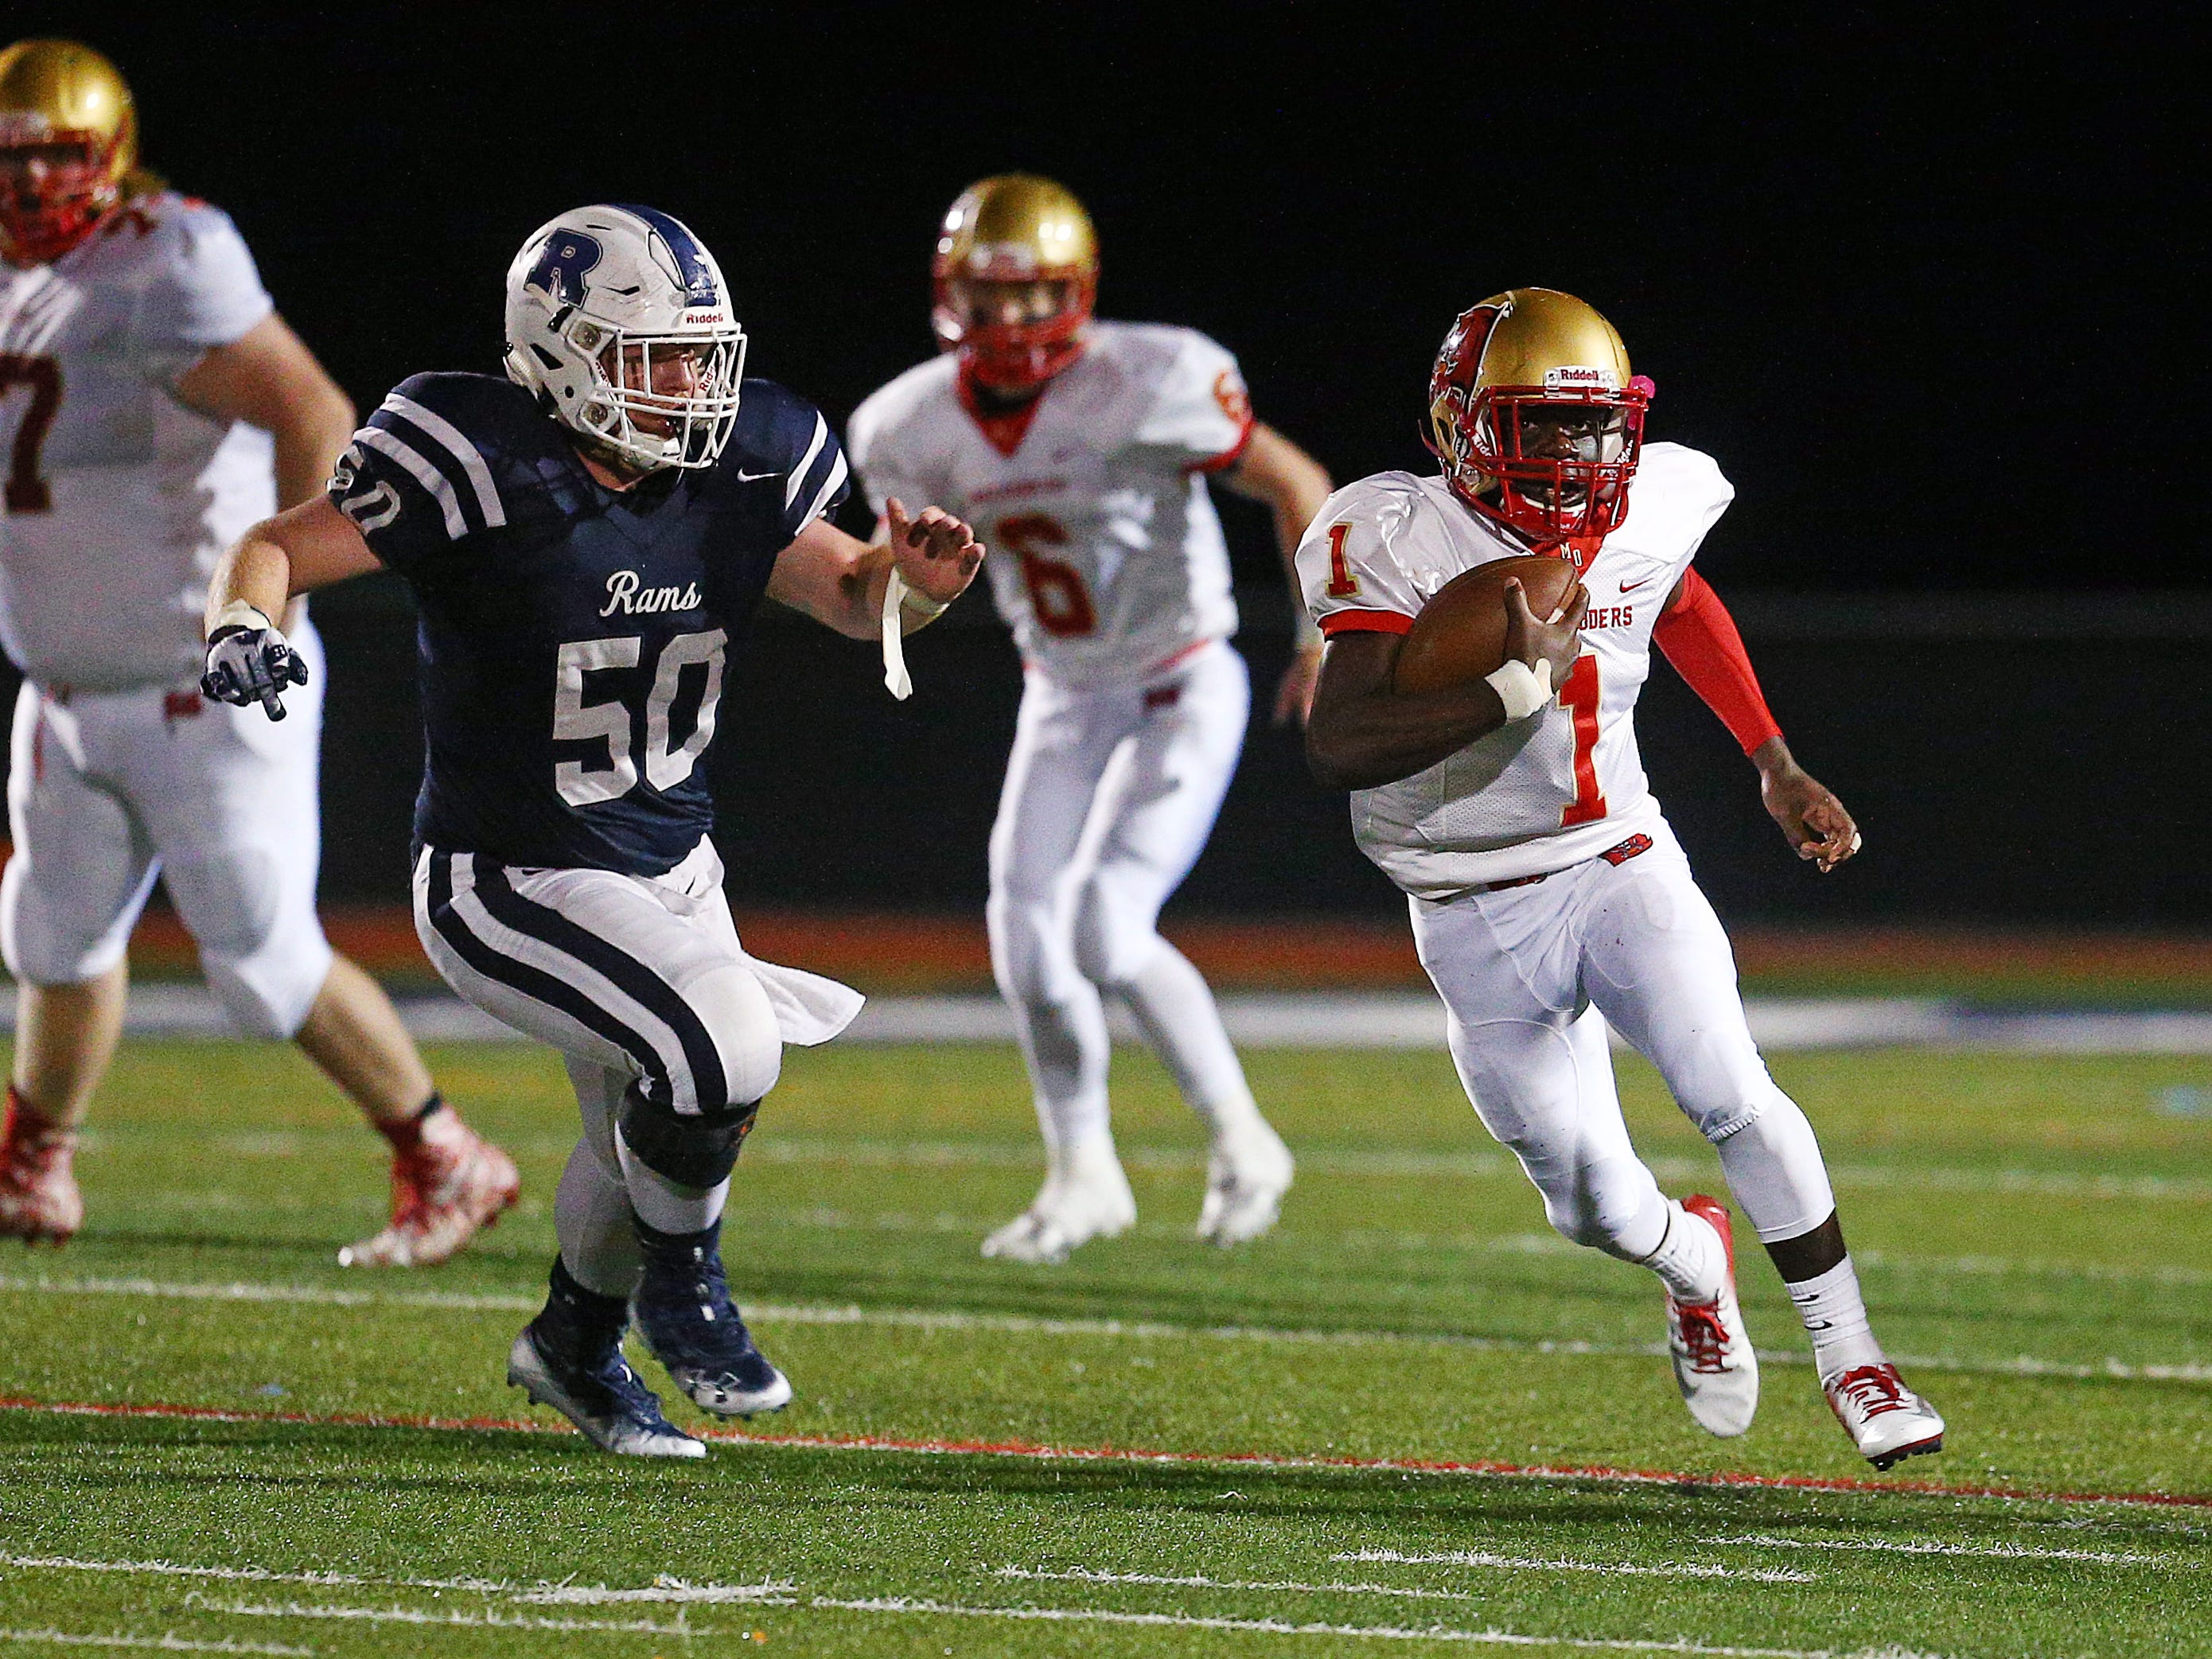 Mount Olive quarterback Tamar Albritton gains yardage on a keeper vs. Randolph during their SFC Freedom Blue Friday night football game. September 28, 2018, Randolph, NJ